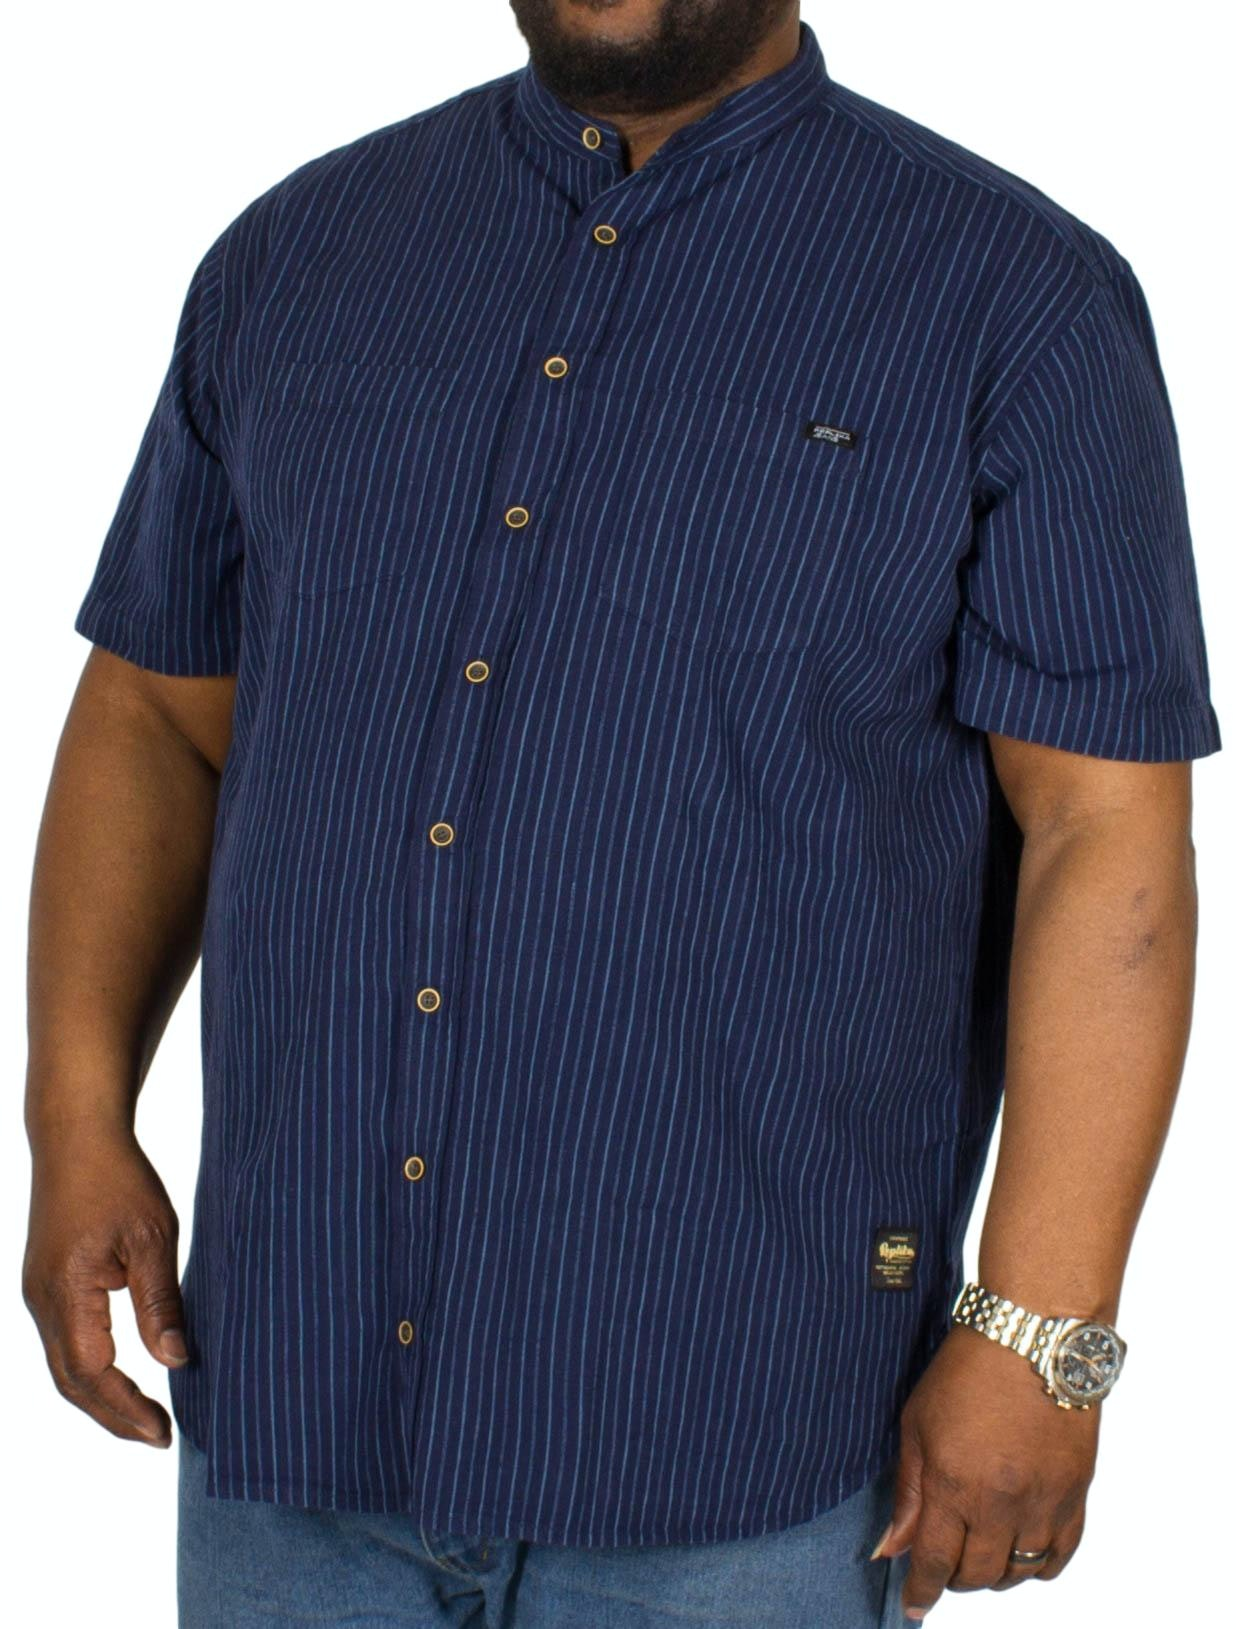 Replika Striped Short Sleeve Shirt Navy